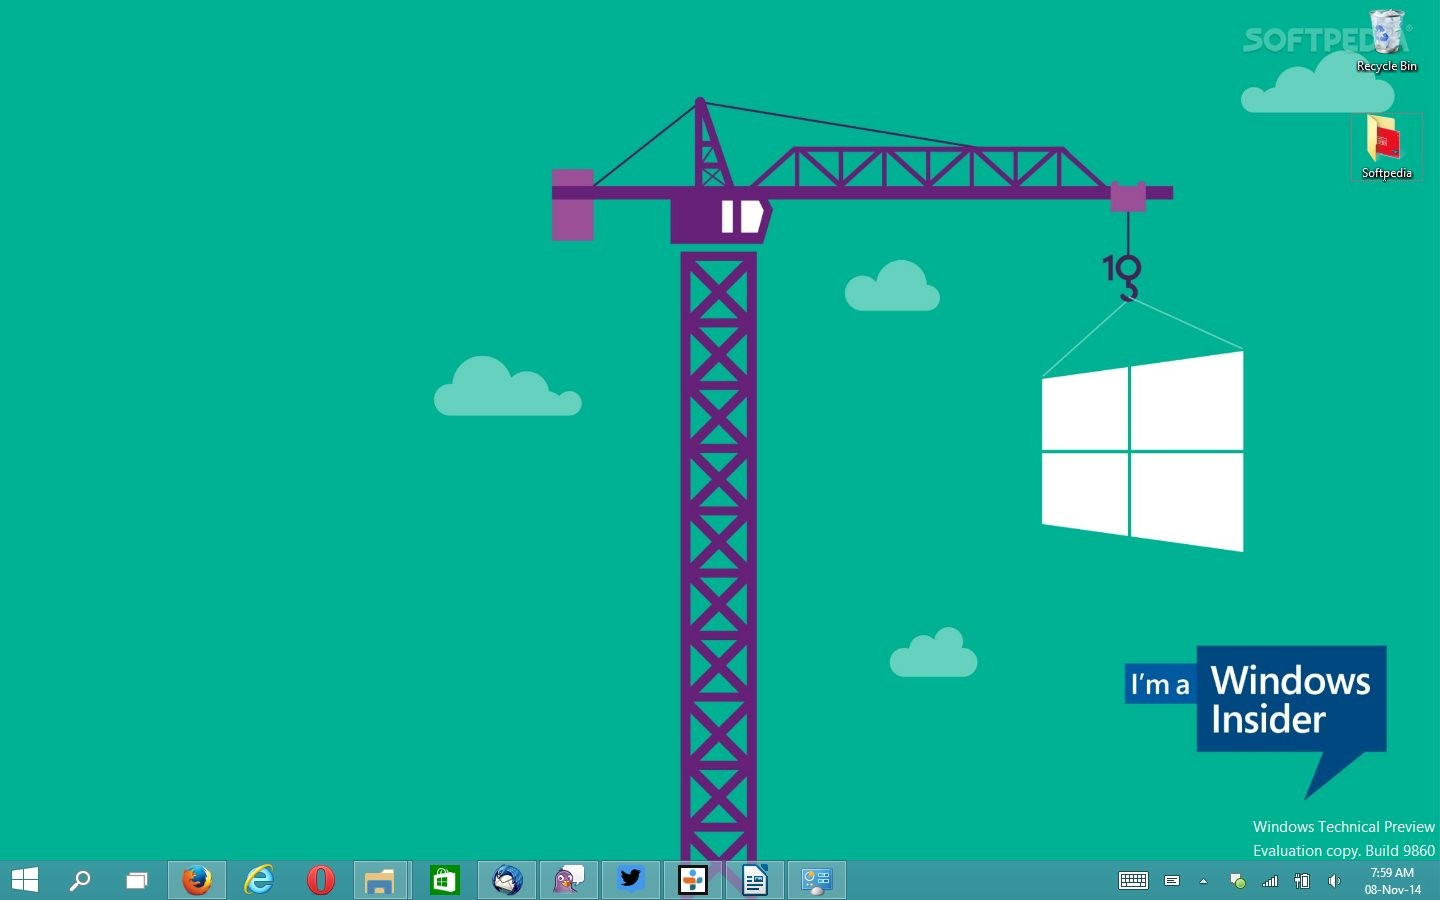 47+] Microsoft Wallpaper Windows 10 on WallpaperSafari